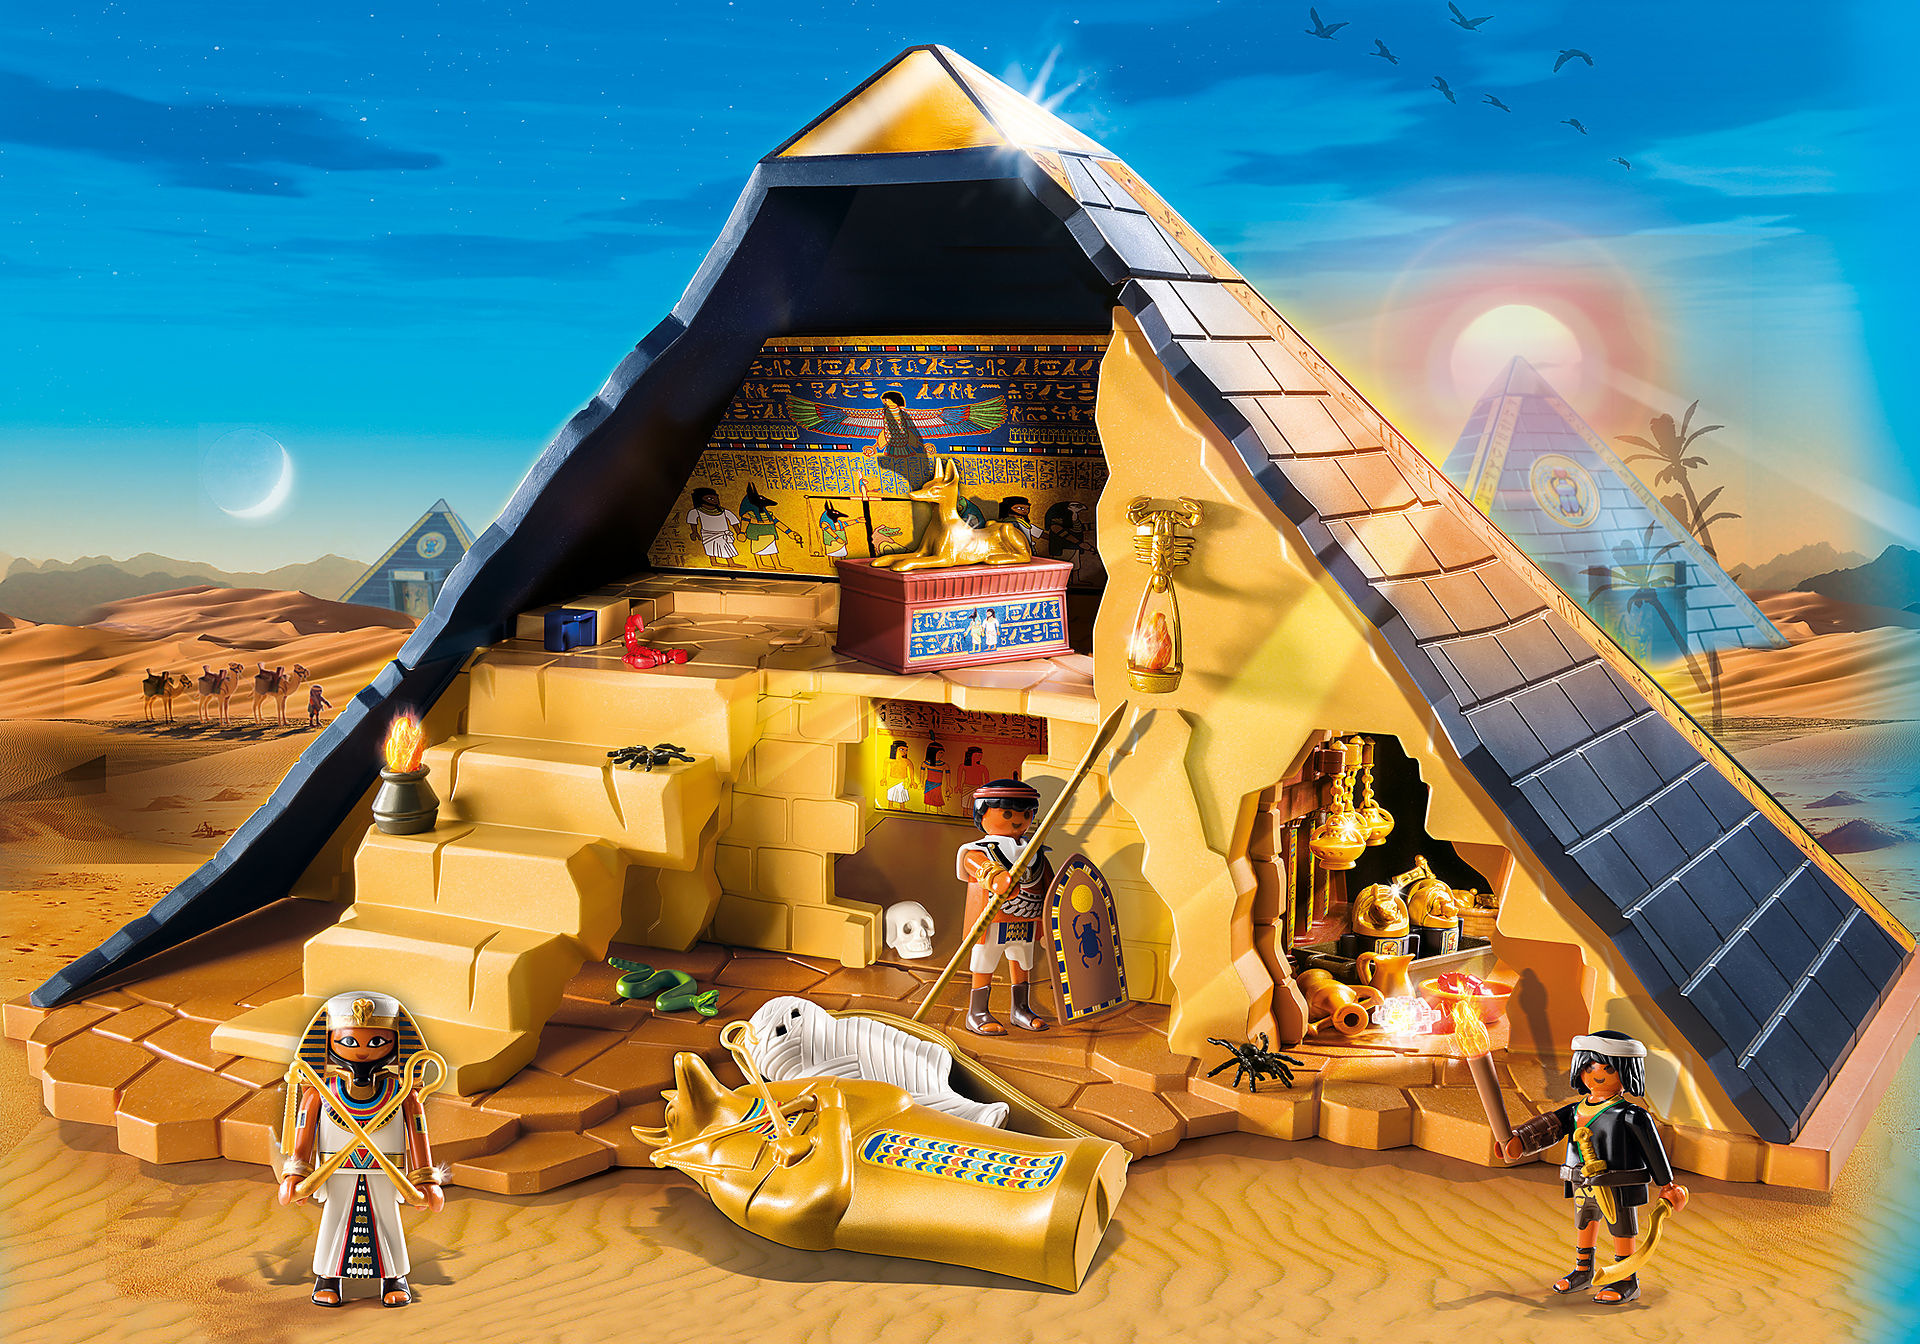 http://media.playmobil.com/i/playmobil/5386_product_detail/Римляне и Египтяне: Пирамида Фараона